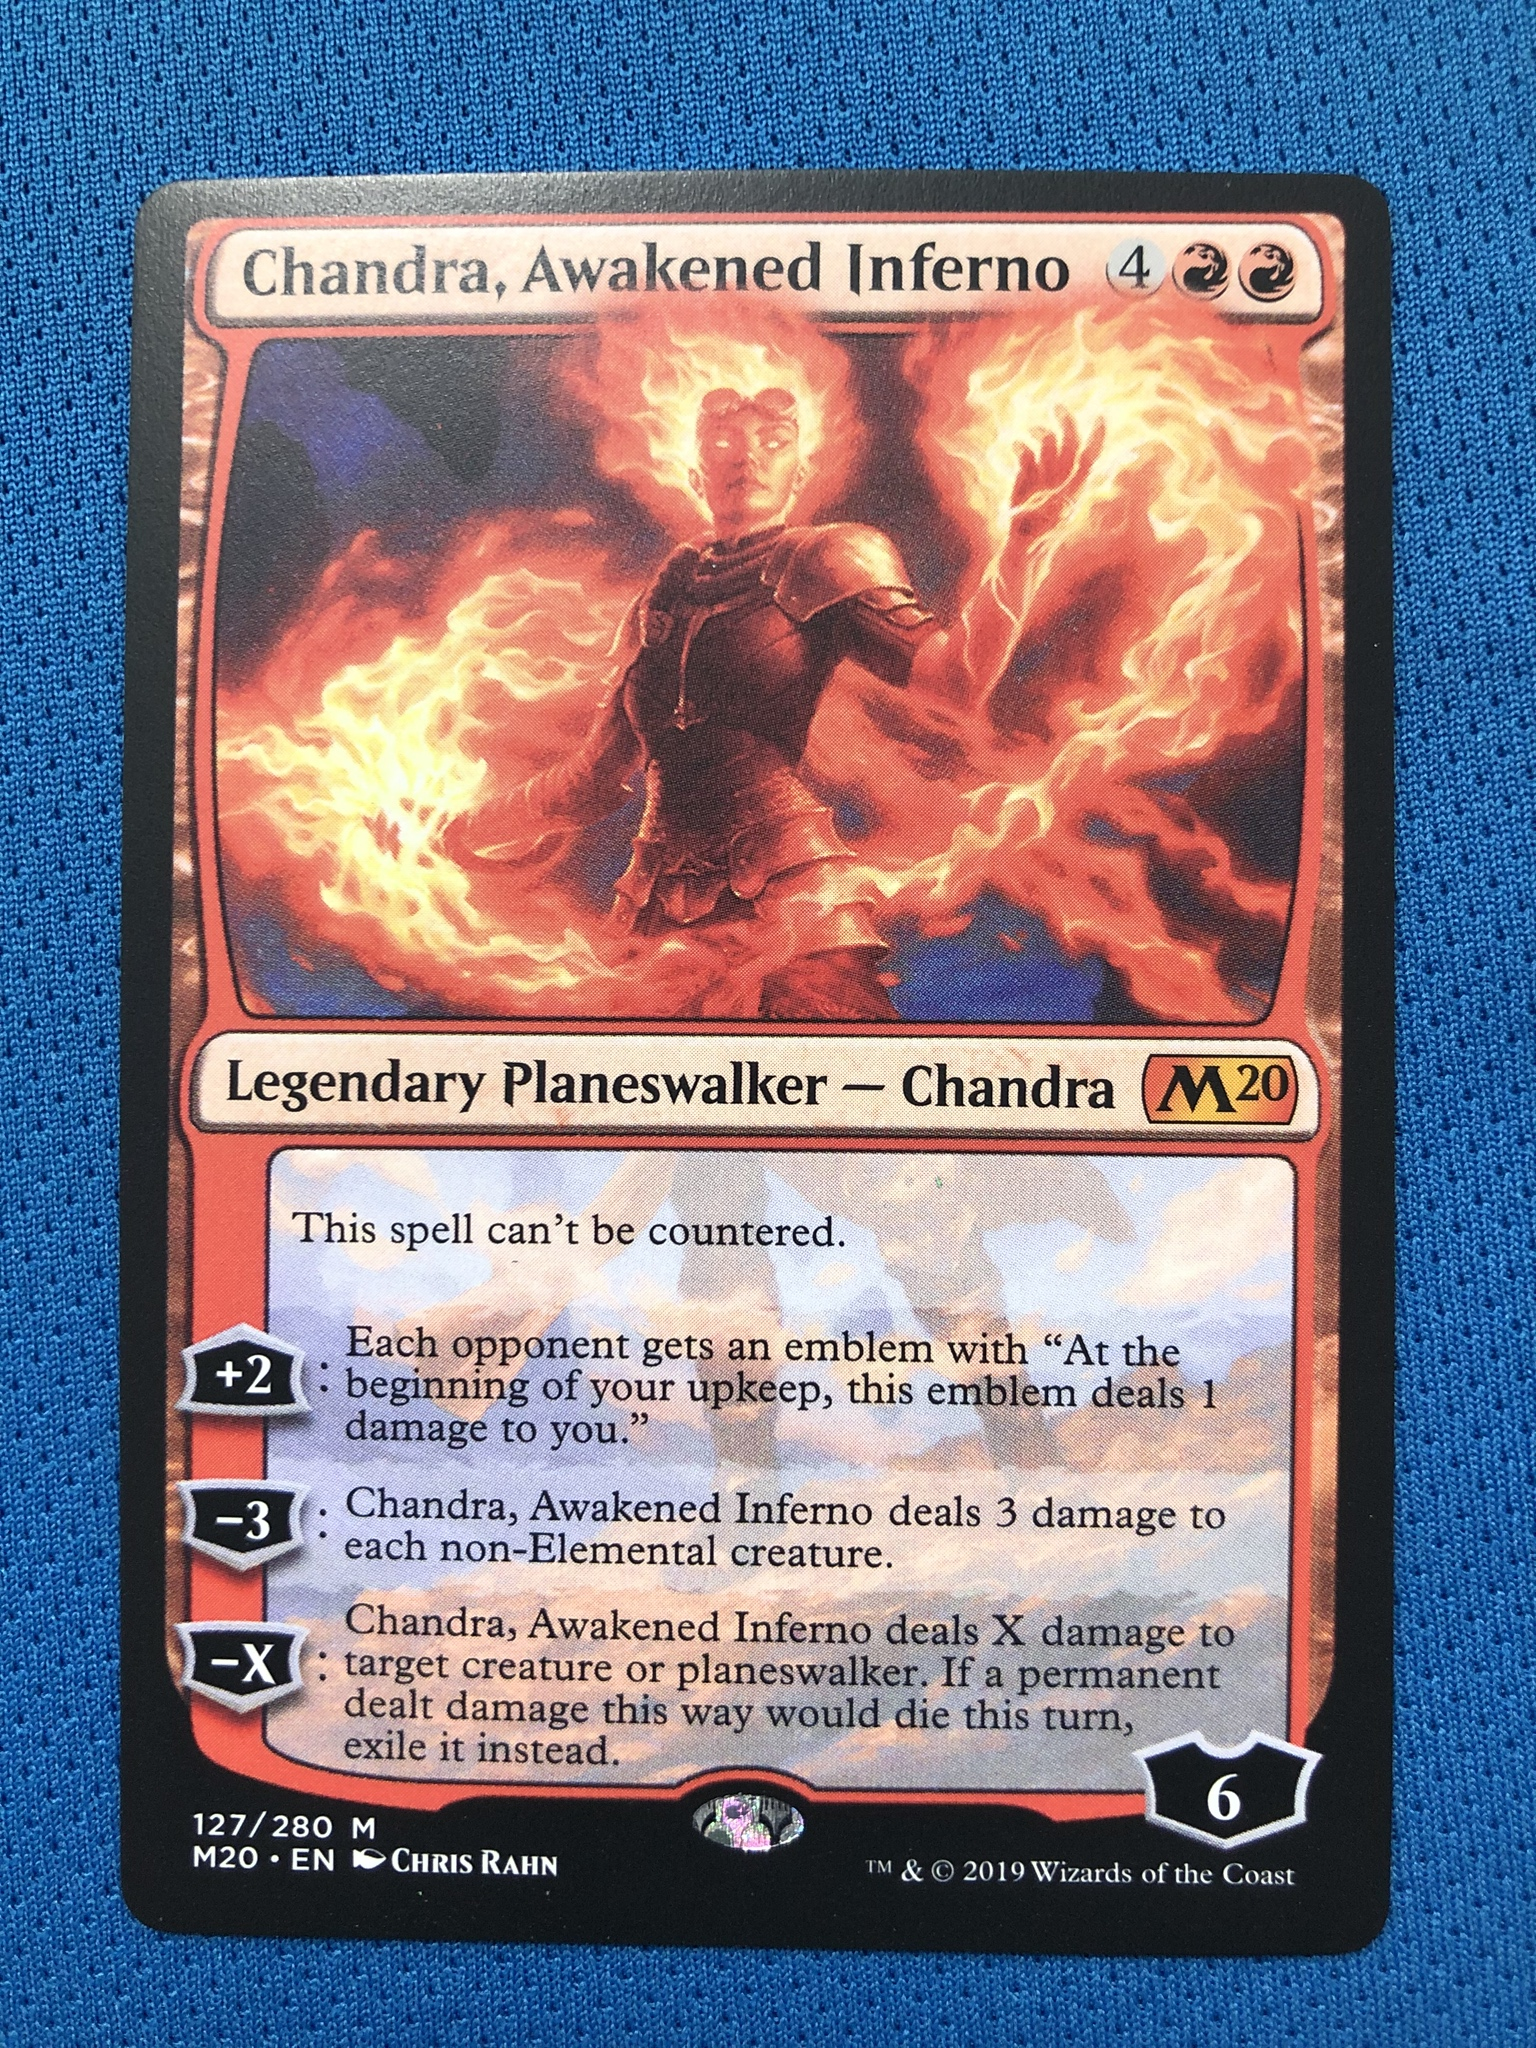 Chandra, Awakened Inferno	M20 Hologram Magician ProxyKing 8.0 VIP The Proxy Cards To Gathering Every Single Mg Card.